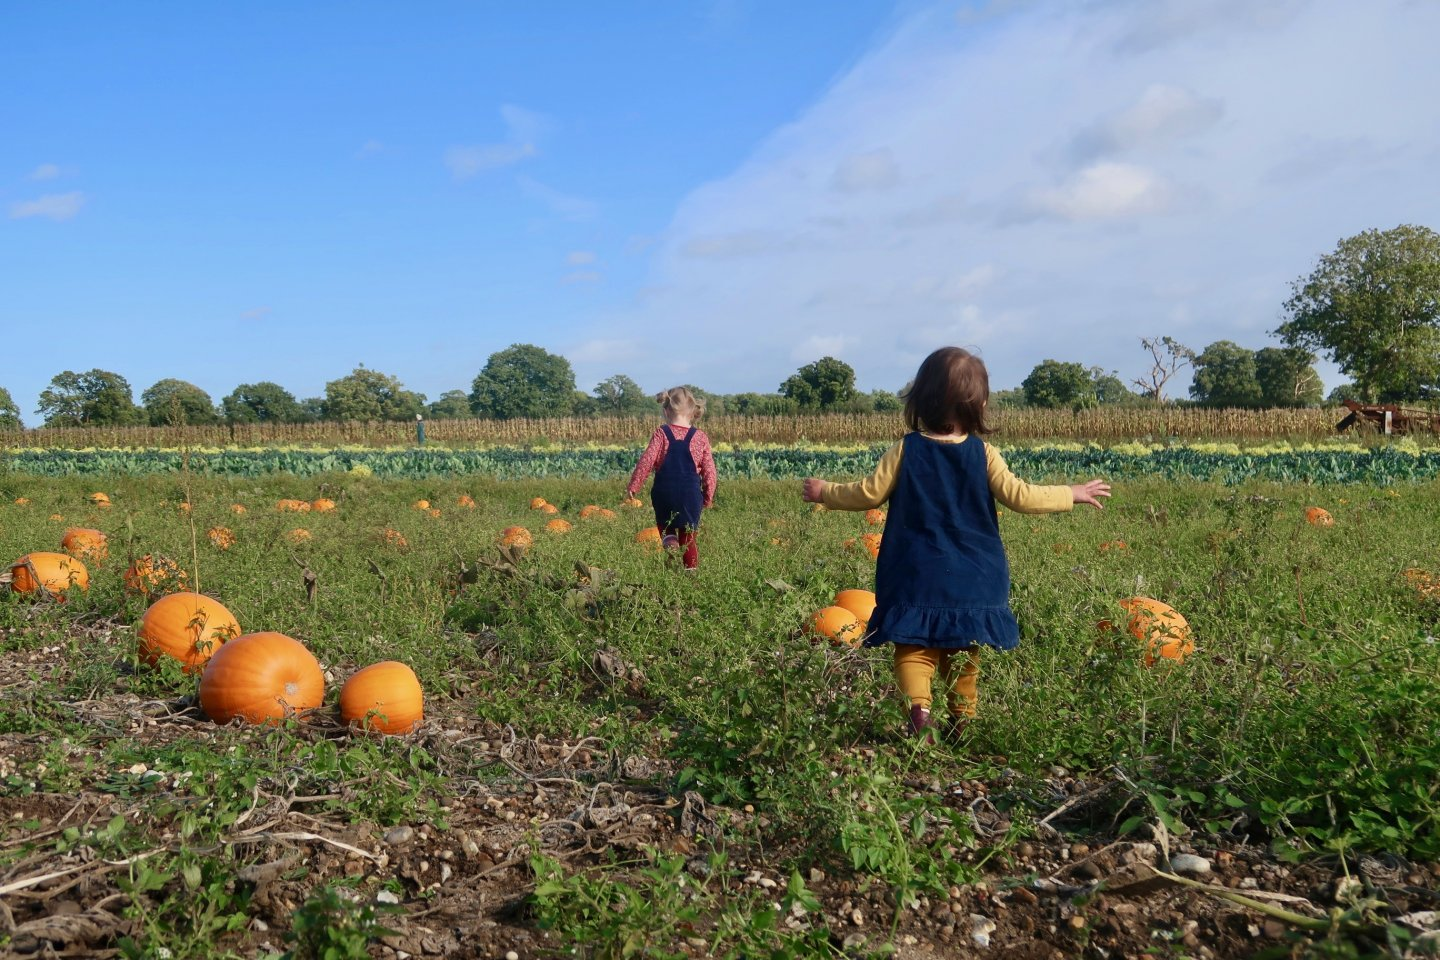 M and B walking across the pumpkin field at Horstead.